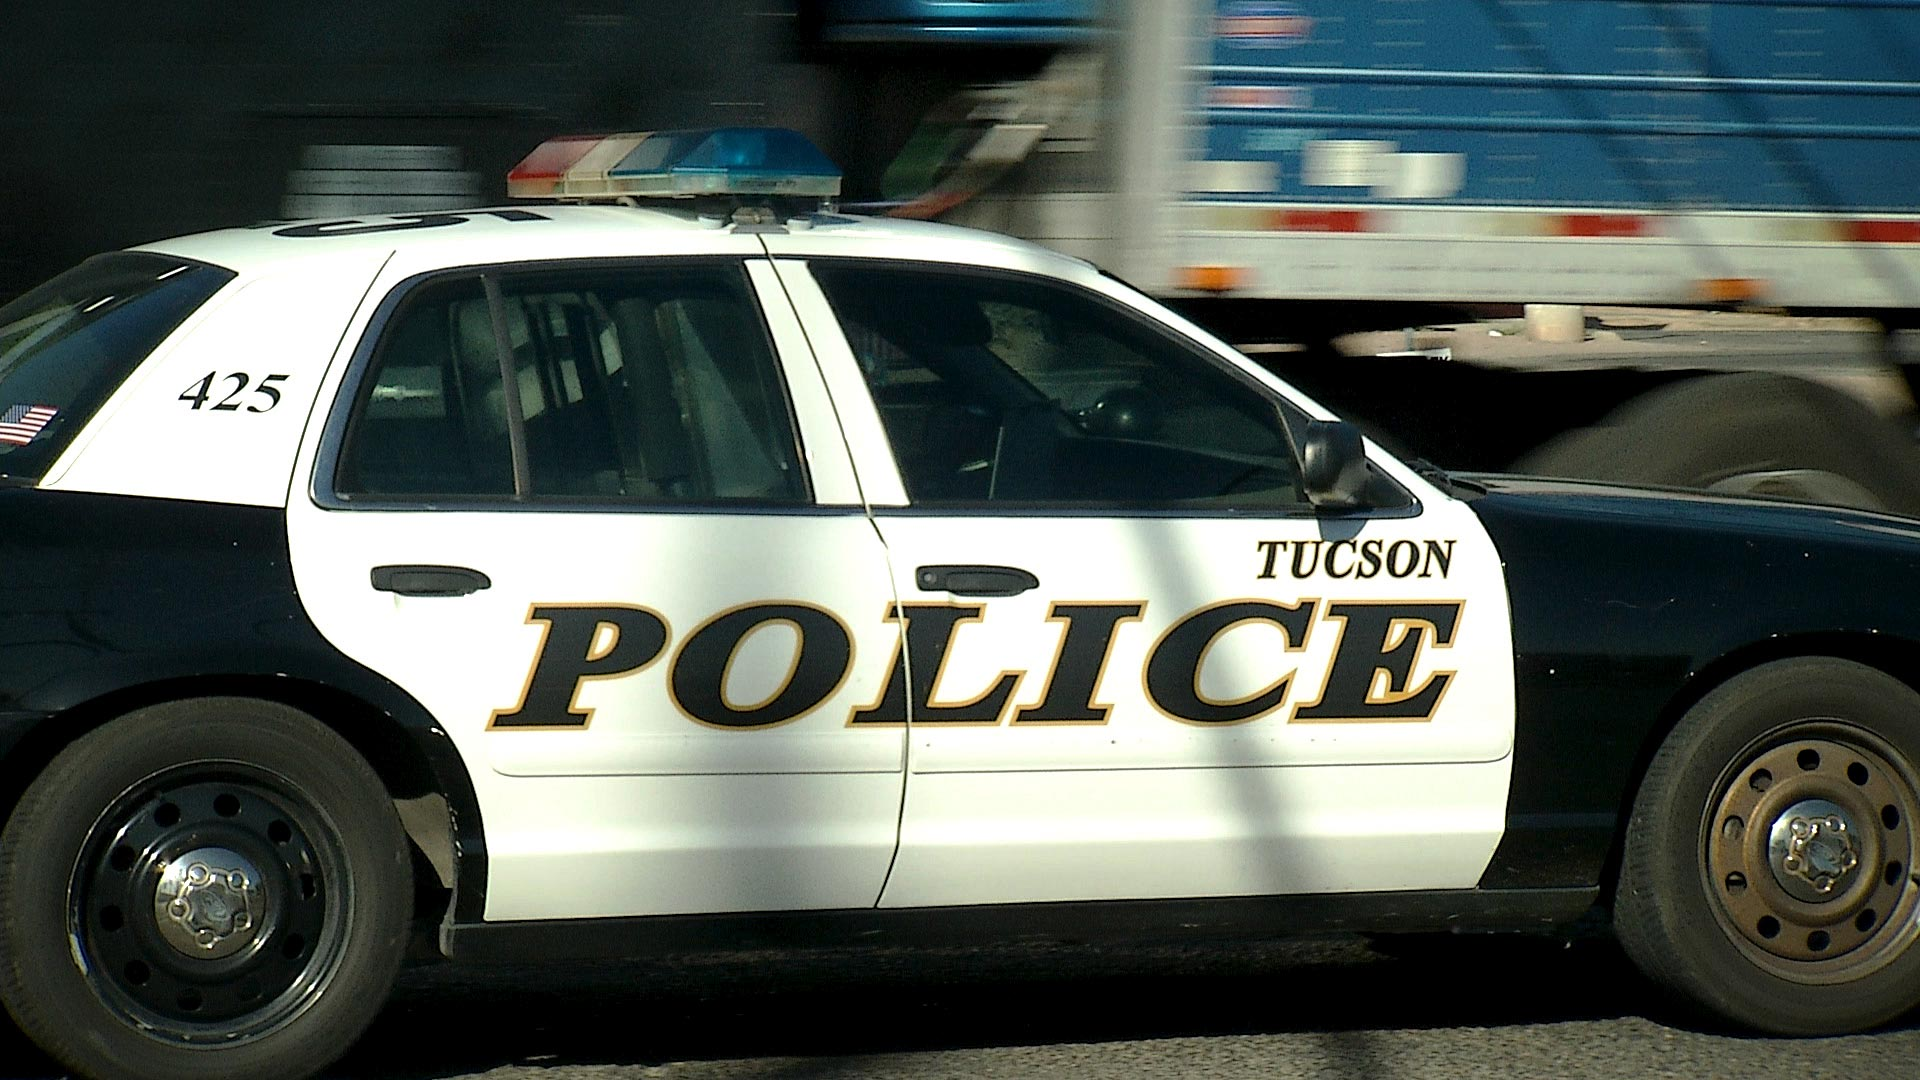 A Tucson Police car on patrol.